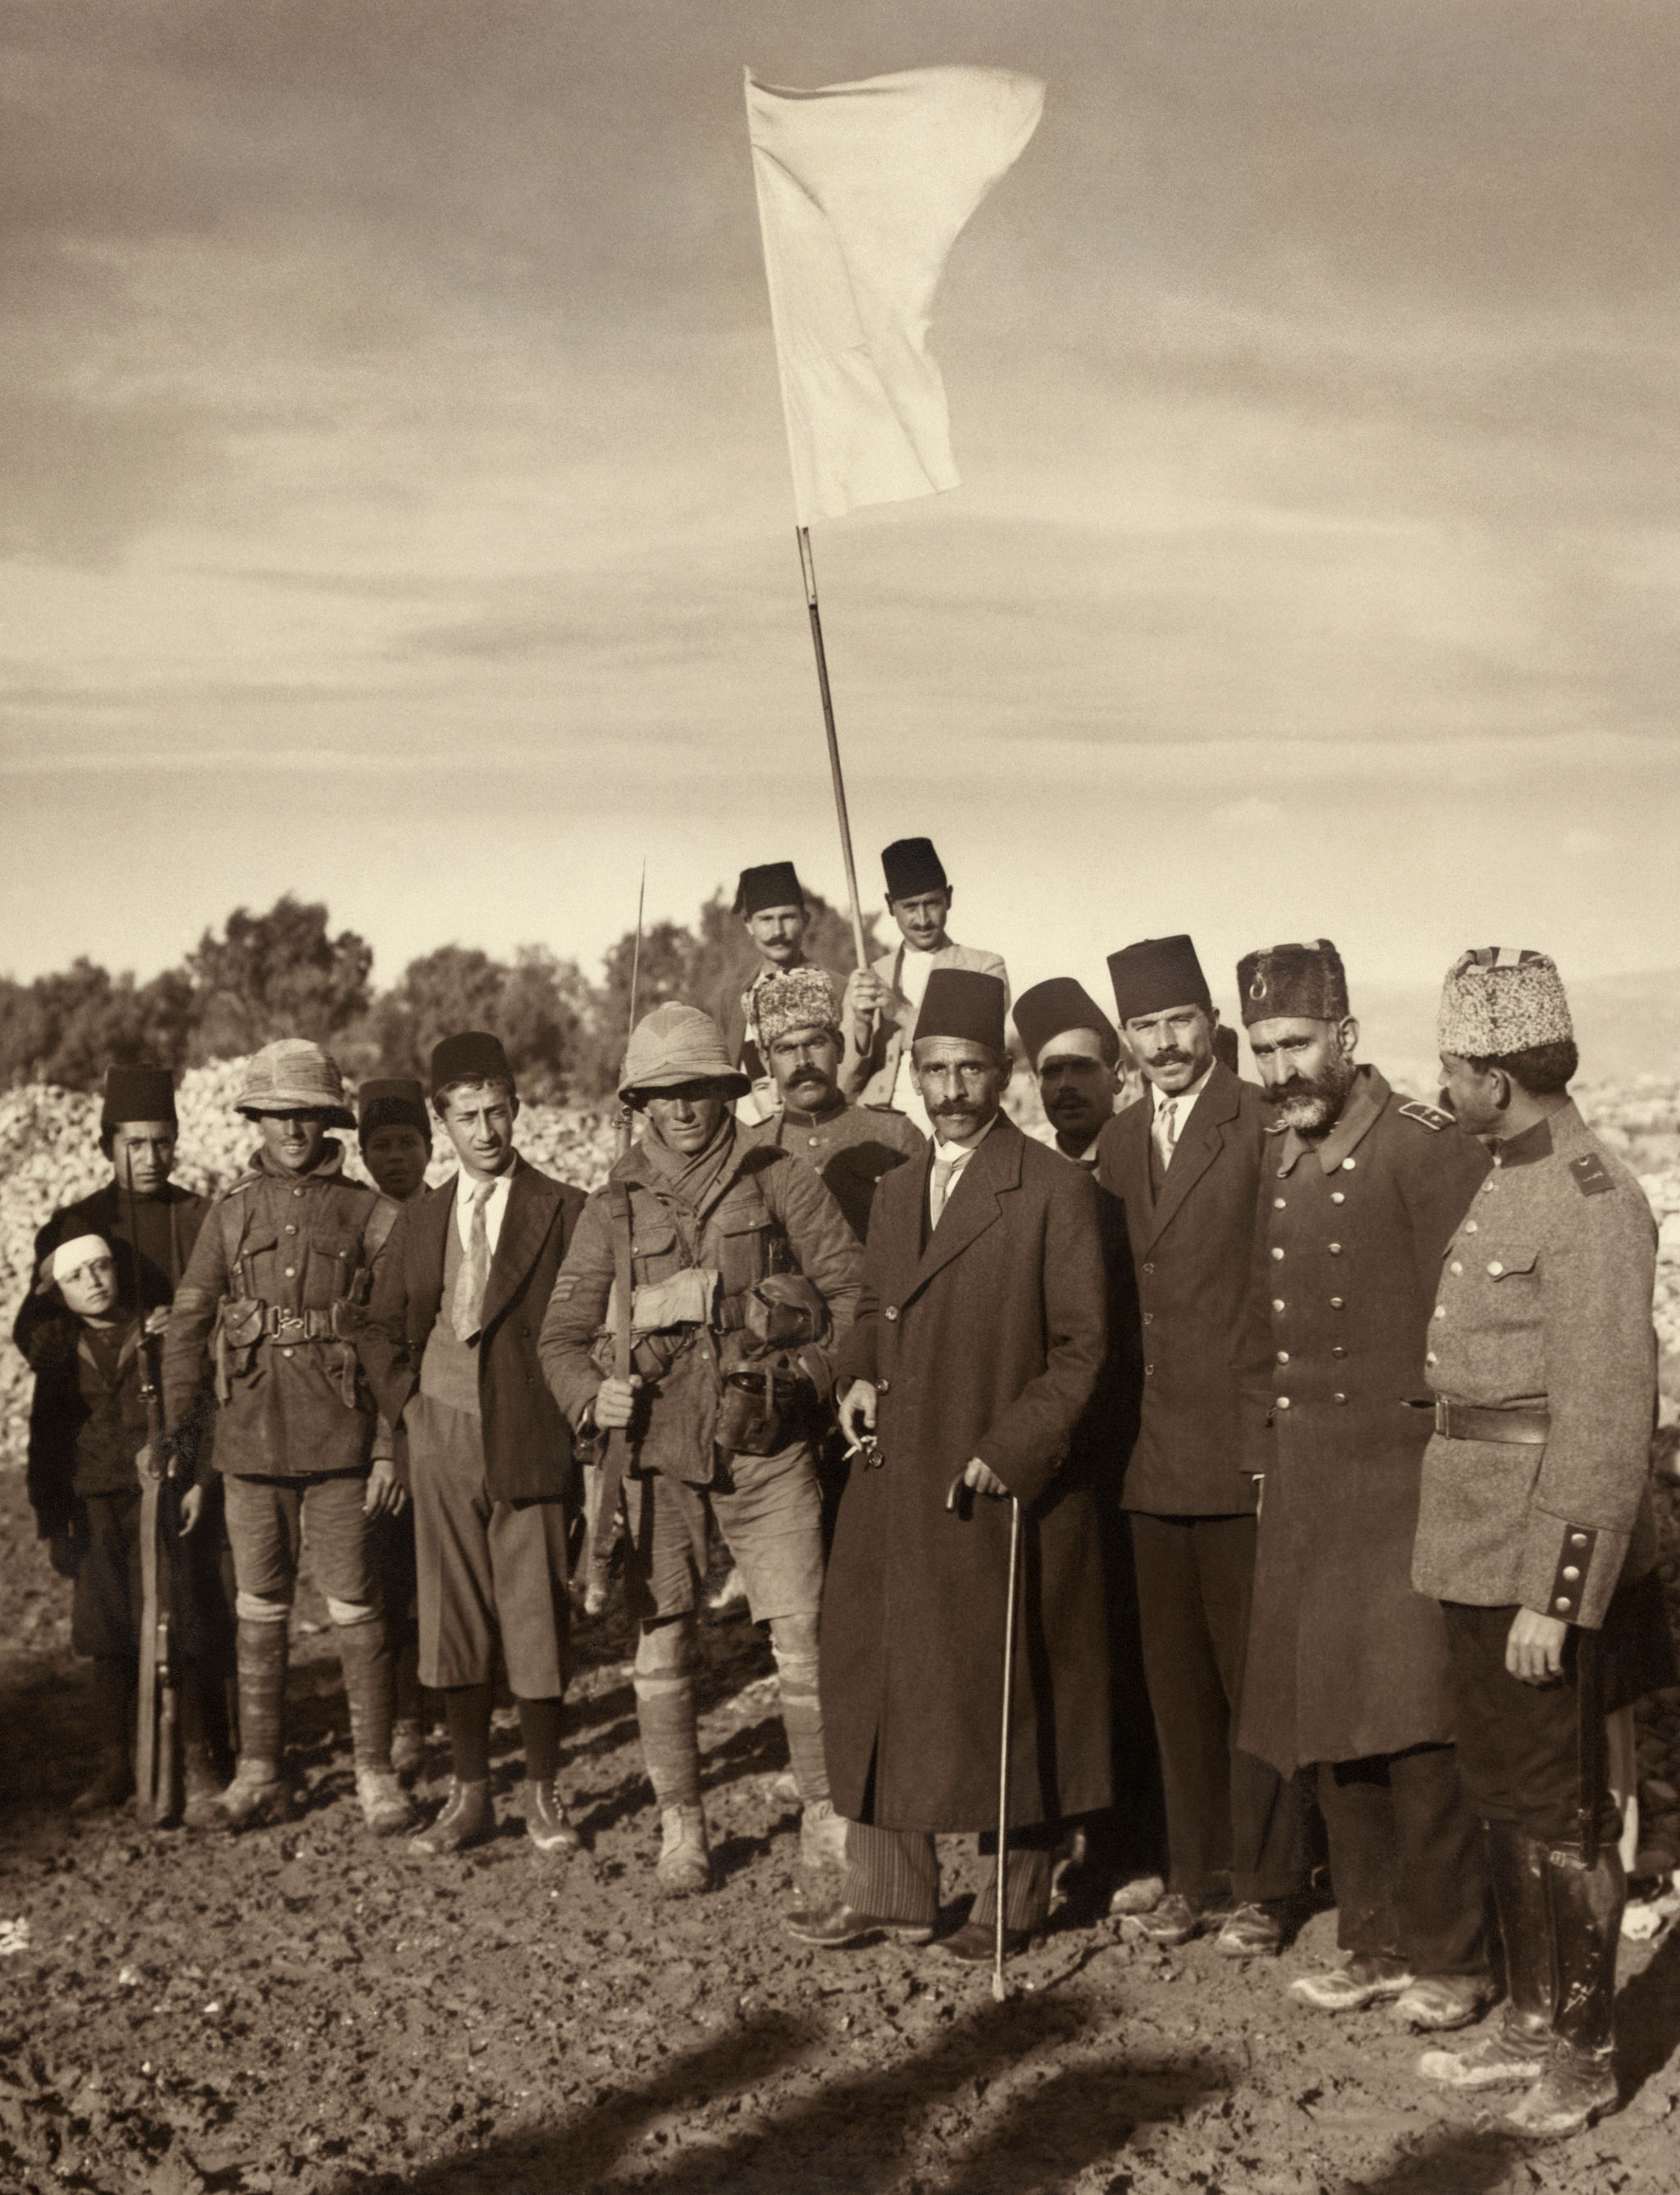 The Sykes Picot Agreements